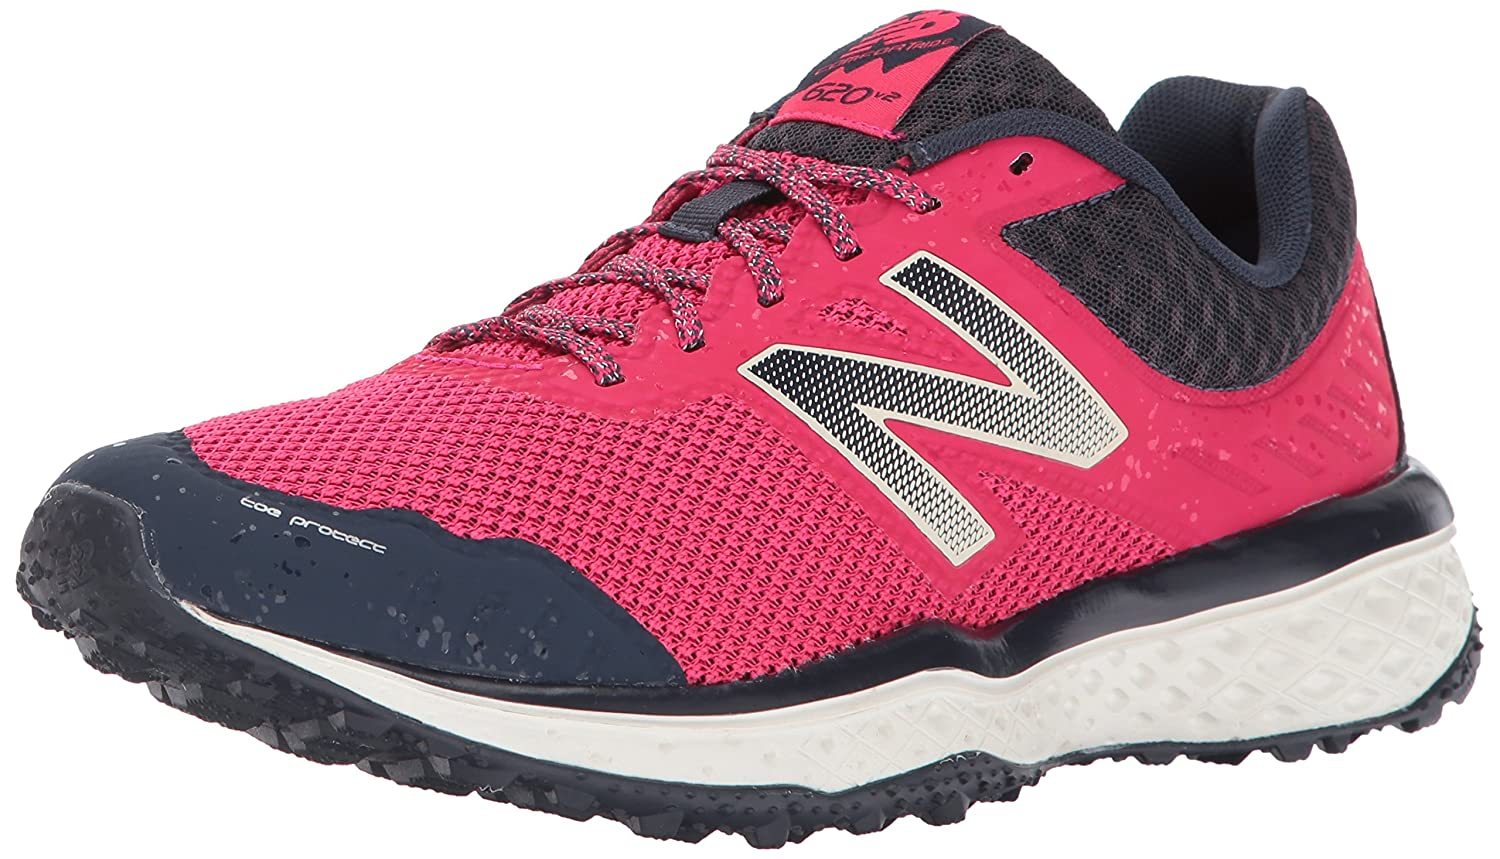 New Balance Women's Cushioning 620v2 Trail Running Shoe B01LZ9DO29 5 D US|Pomegranate/Outerspace